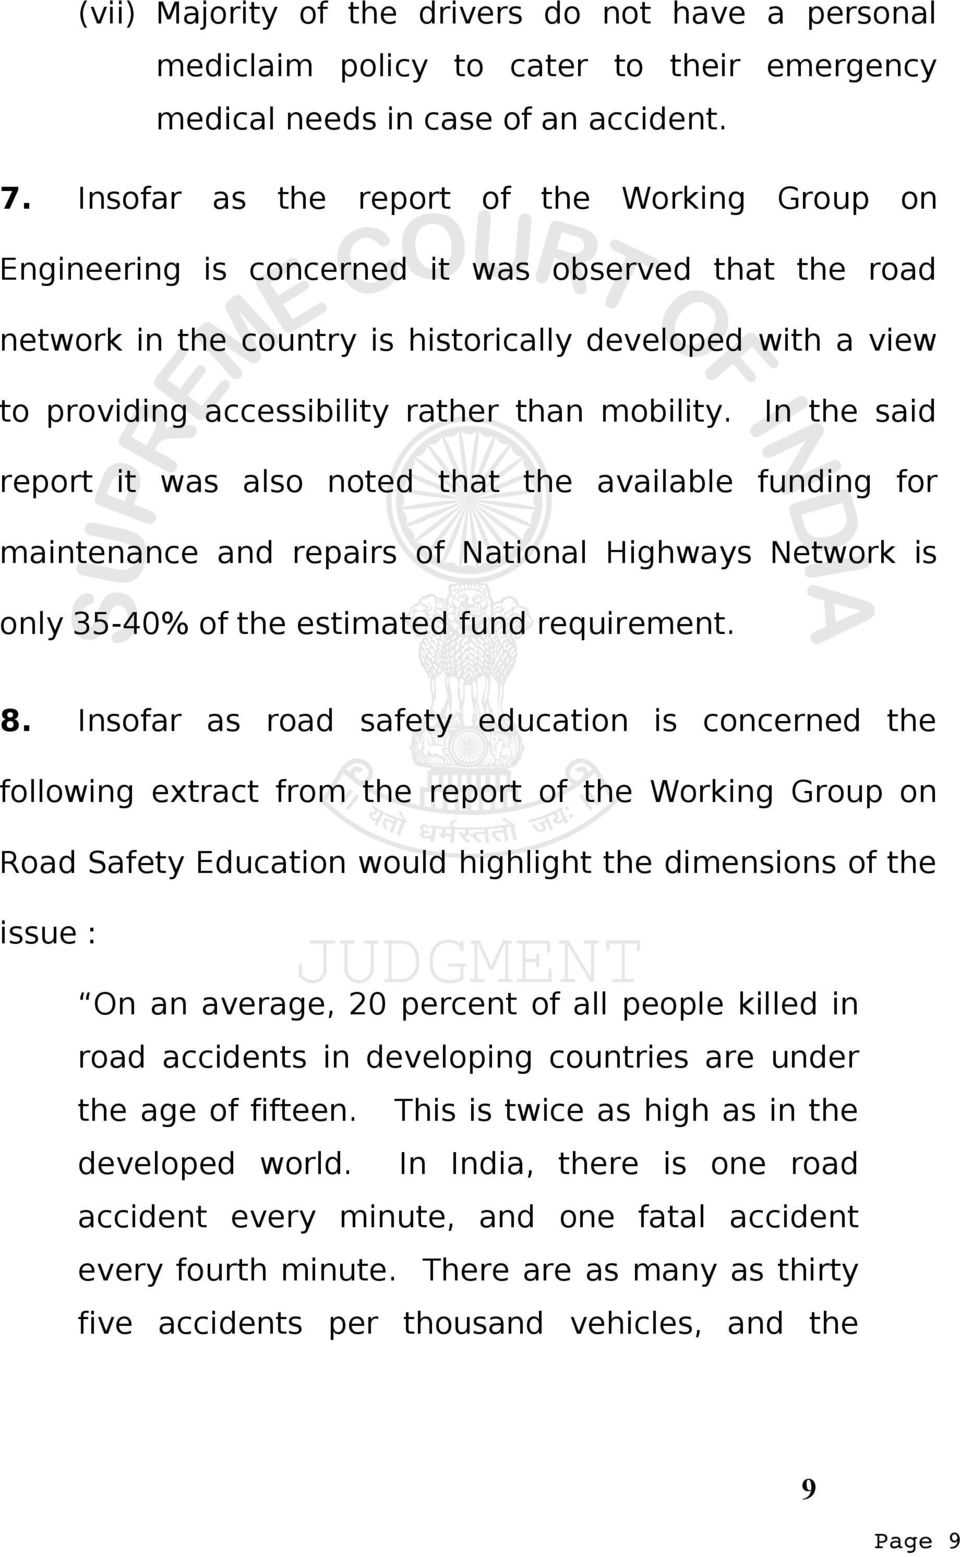 than mobility. In the said report it was also noted that the available funding for maintenance and repairs of National Highways Network is only 35-40% of the estimated fund requirement. 8.